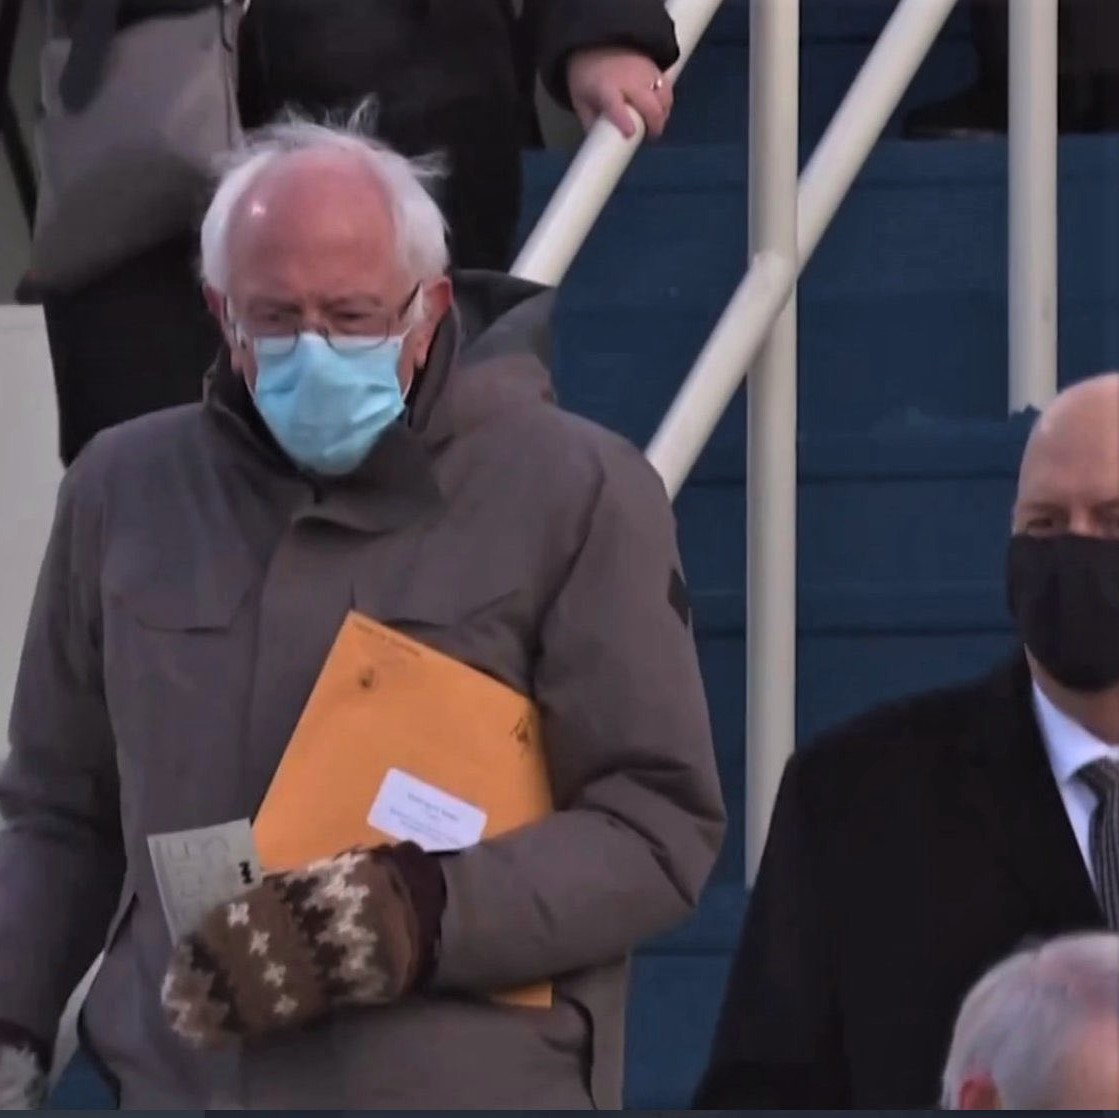 Bernie Sanders at inauguration carrying a mysterious envolope